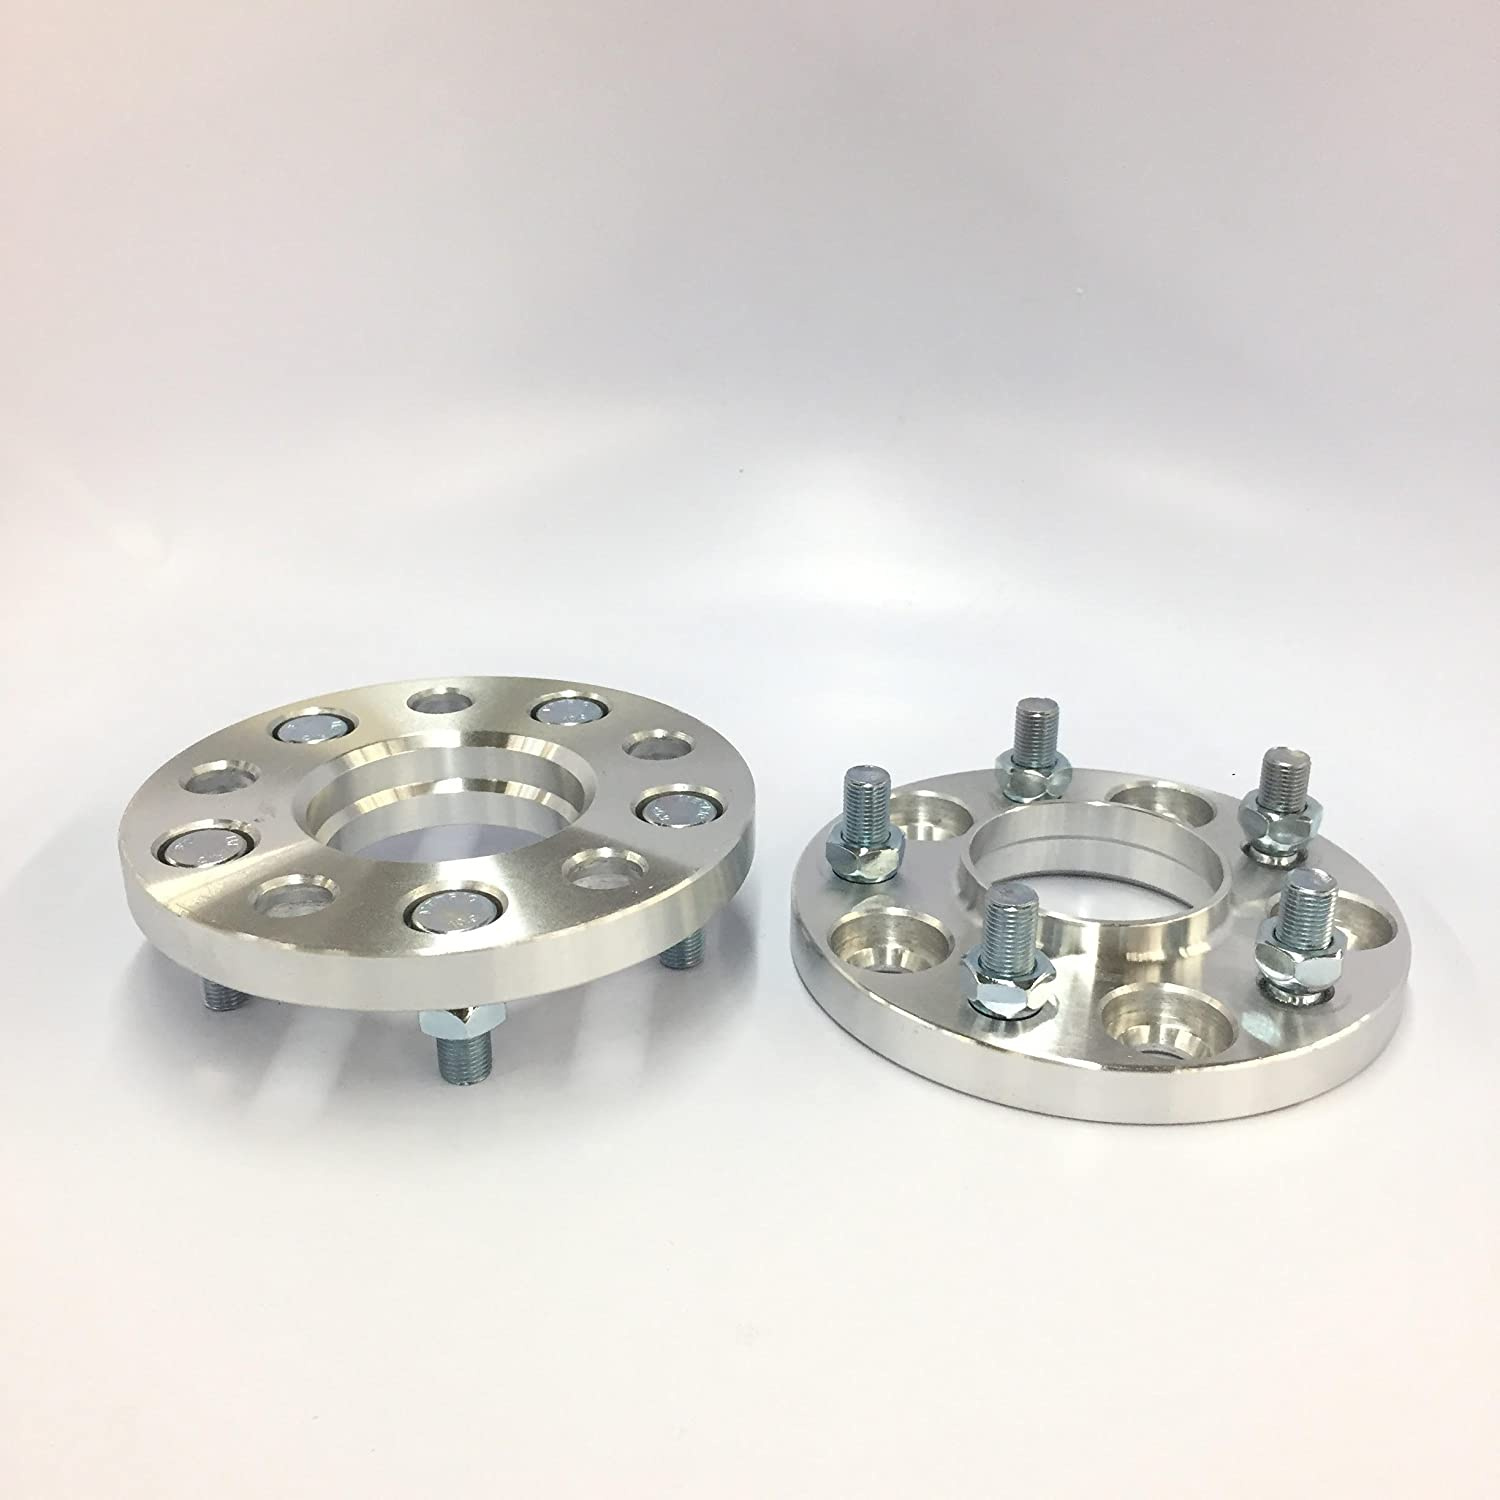 2 Pieces 0.59 15mm Hub Centric Wheel Spacers Bolt Pattern 5x114.3 5x4.5 Center Bore 66.1mm Thread Pitch 12x1.25 Studs For Infiniti G35 G37 Nissan 240sx 350z 370z 300zx